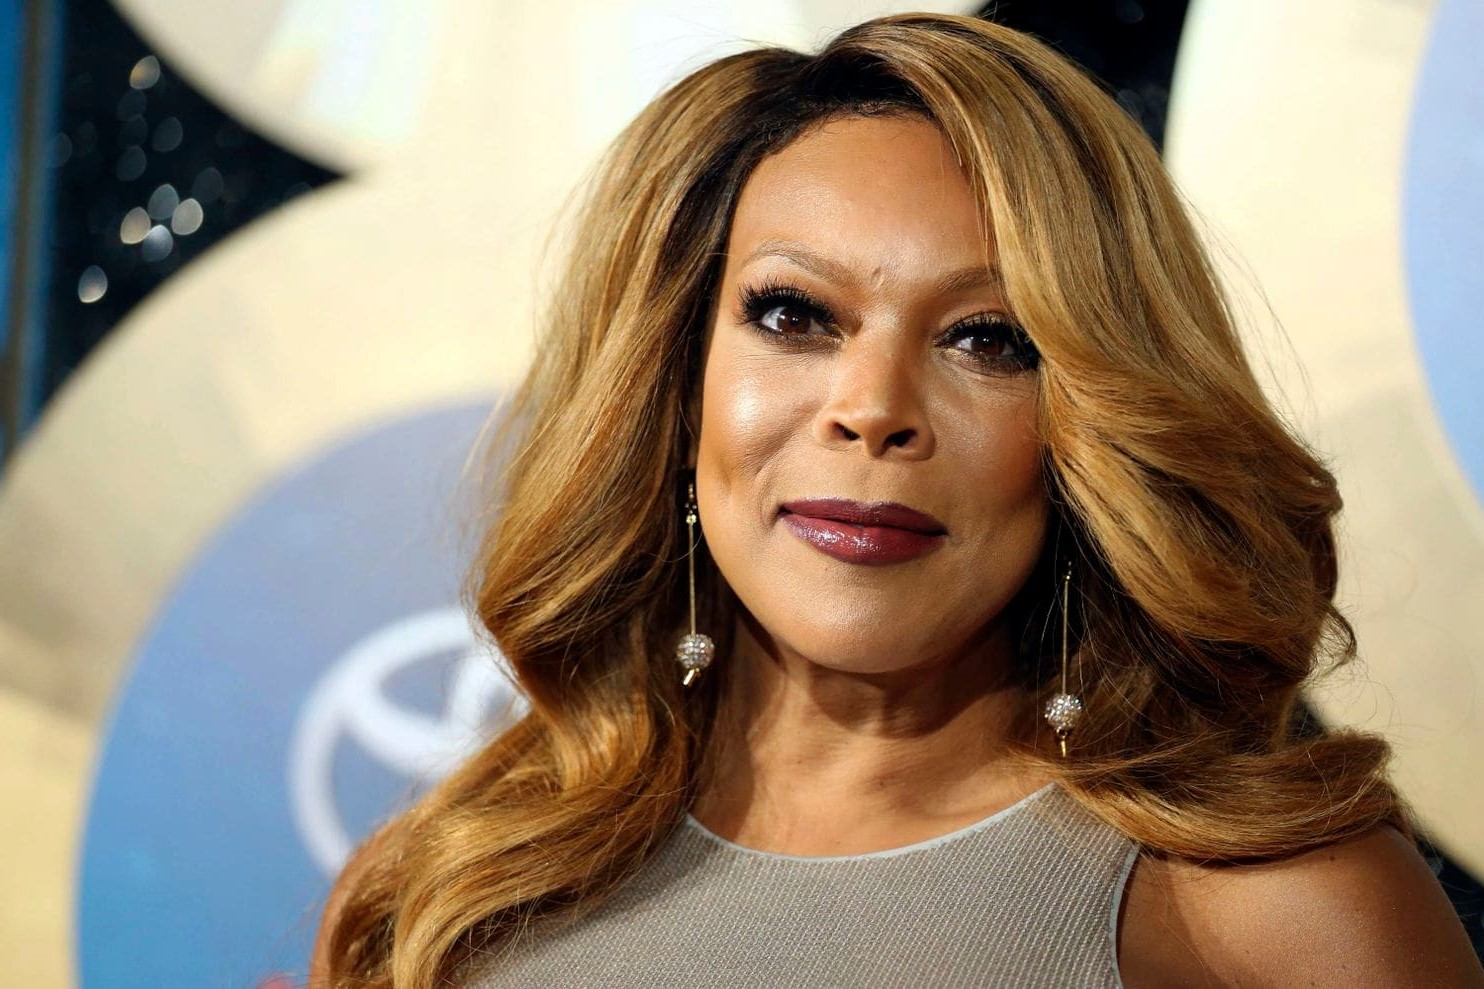 Wendy's Breakfast Will Shock You | 10 Surprising Facts About Wendy Williams | Her Beauty